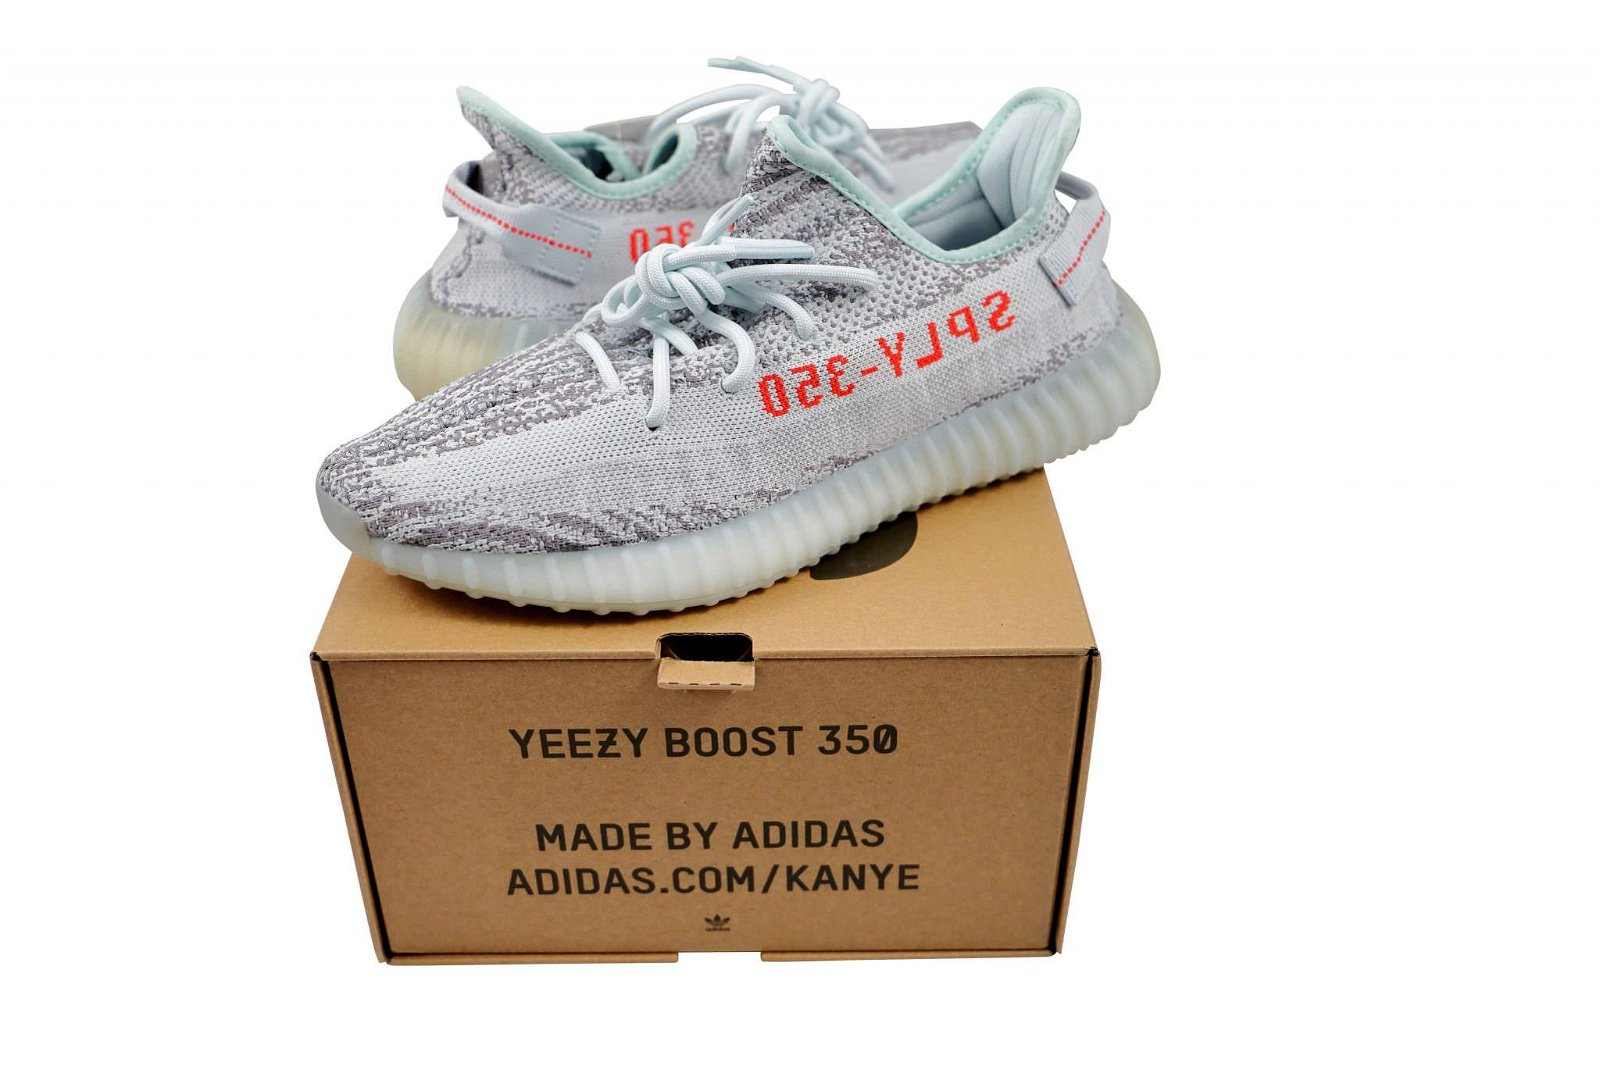 Adidas Yeezy Boost 350 V2 Blue Tint Sneakers Size 11